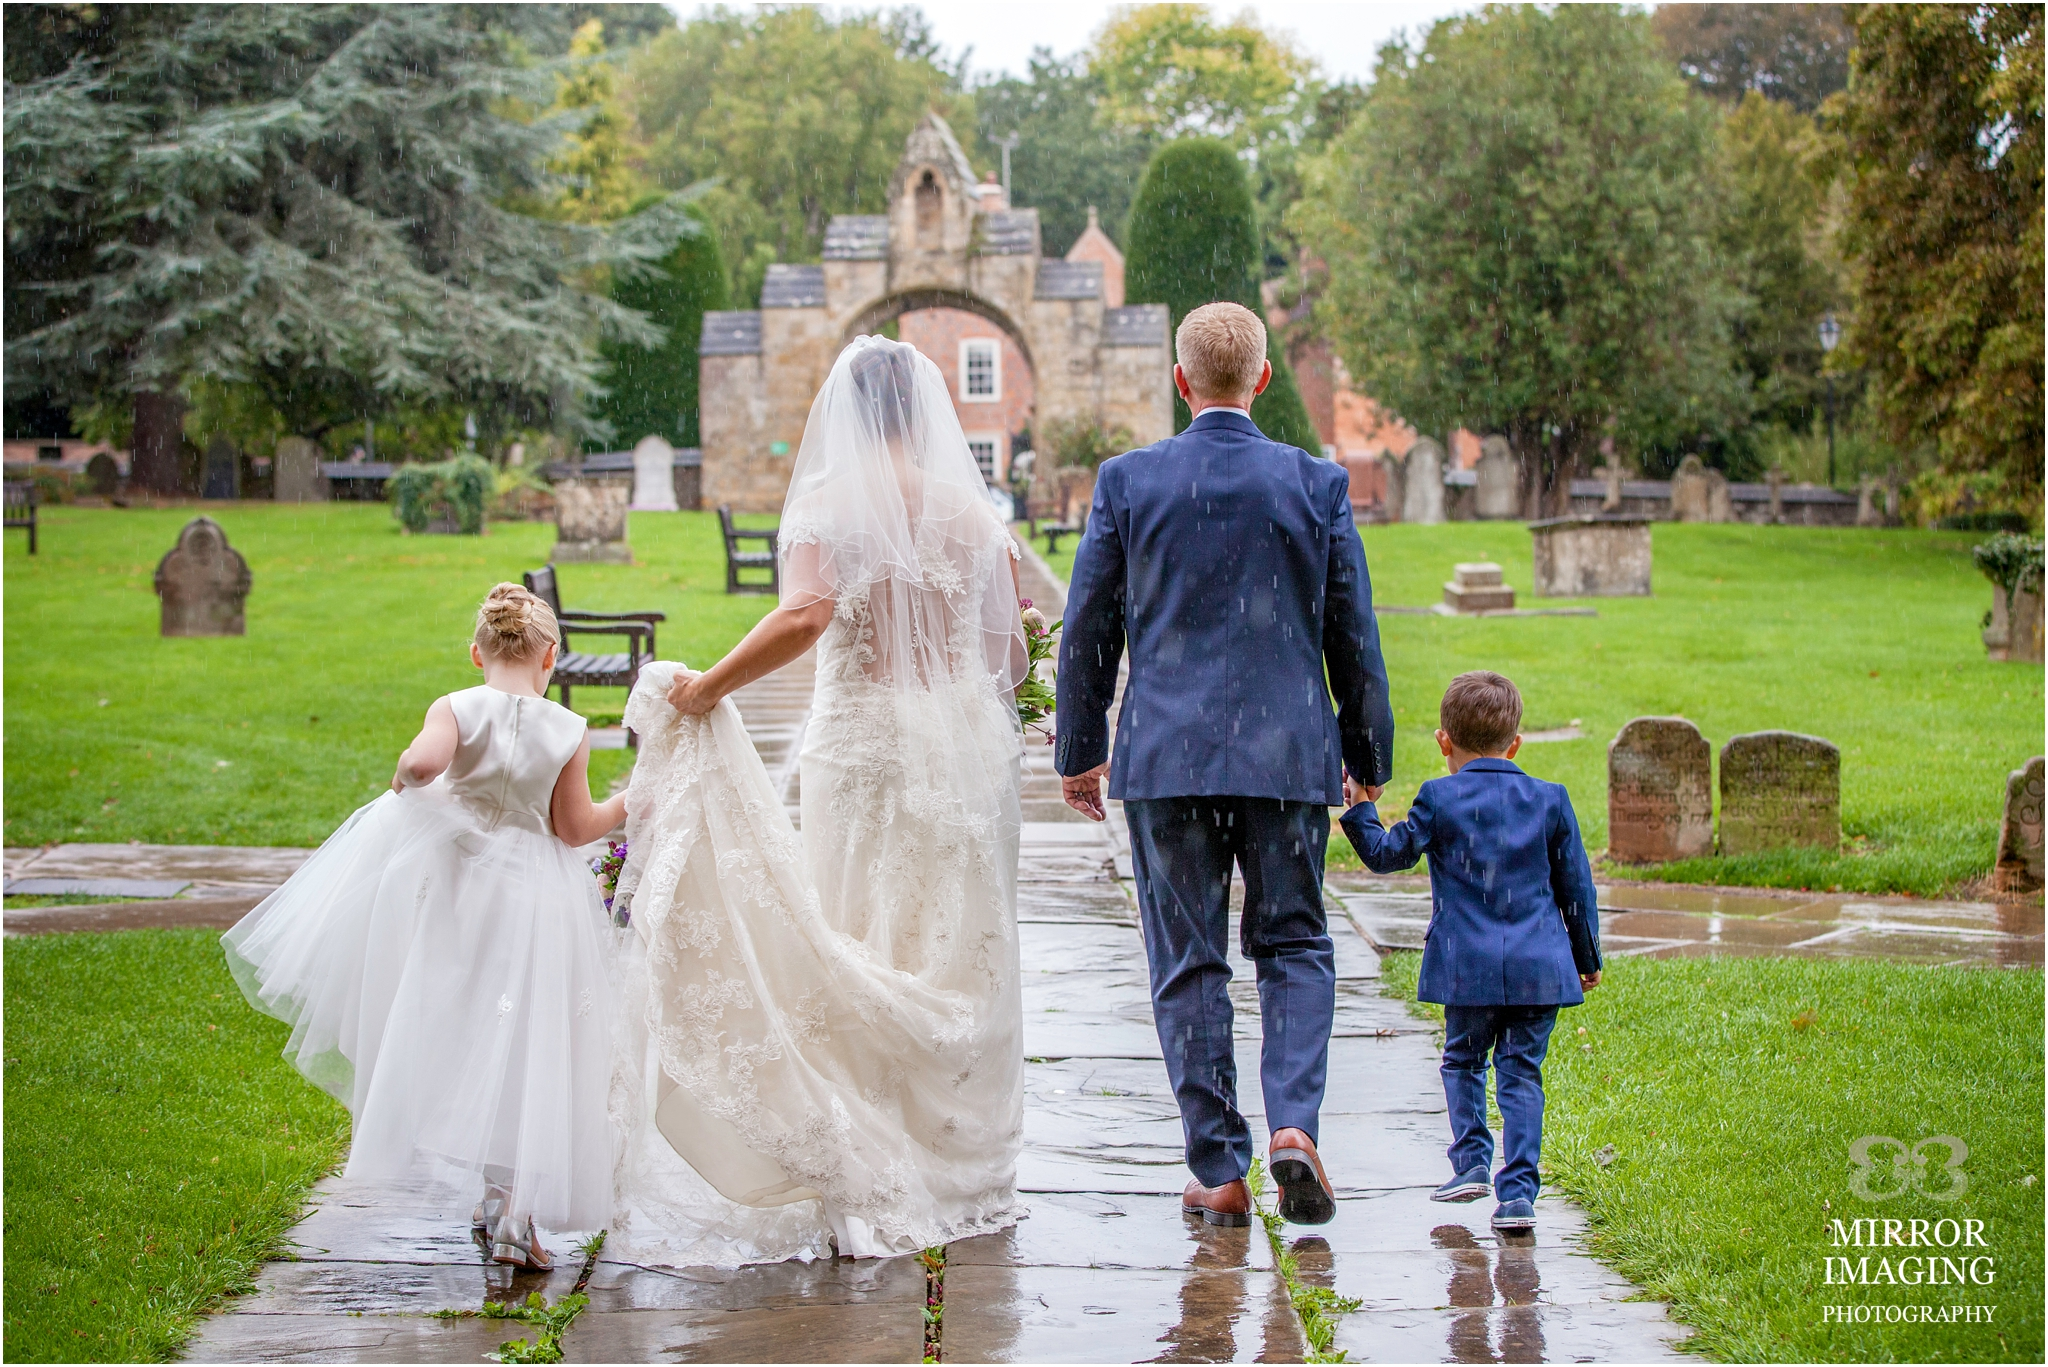 wedding_photographers_nottingham_10.jpg